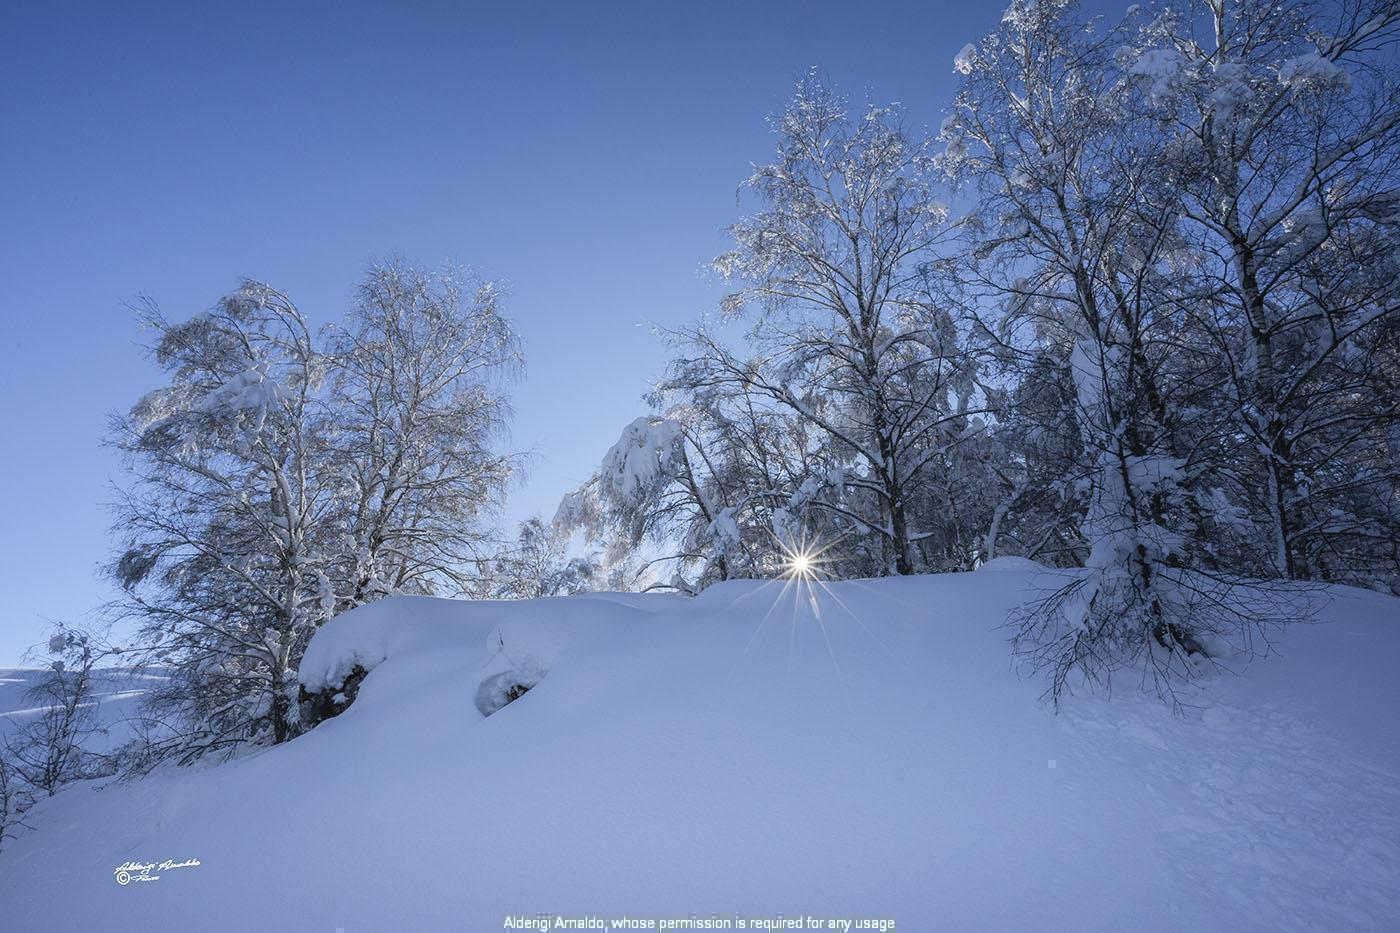 Alderigi Arnaldo Fotografo - LANDSCAPES IN THE SNOW - Photo Gallery